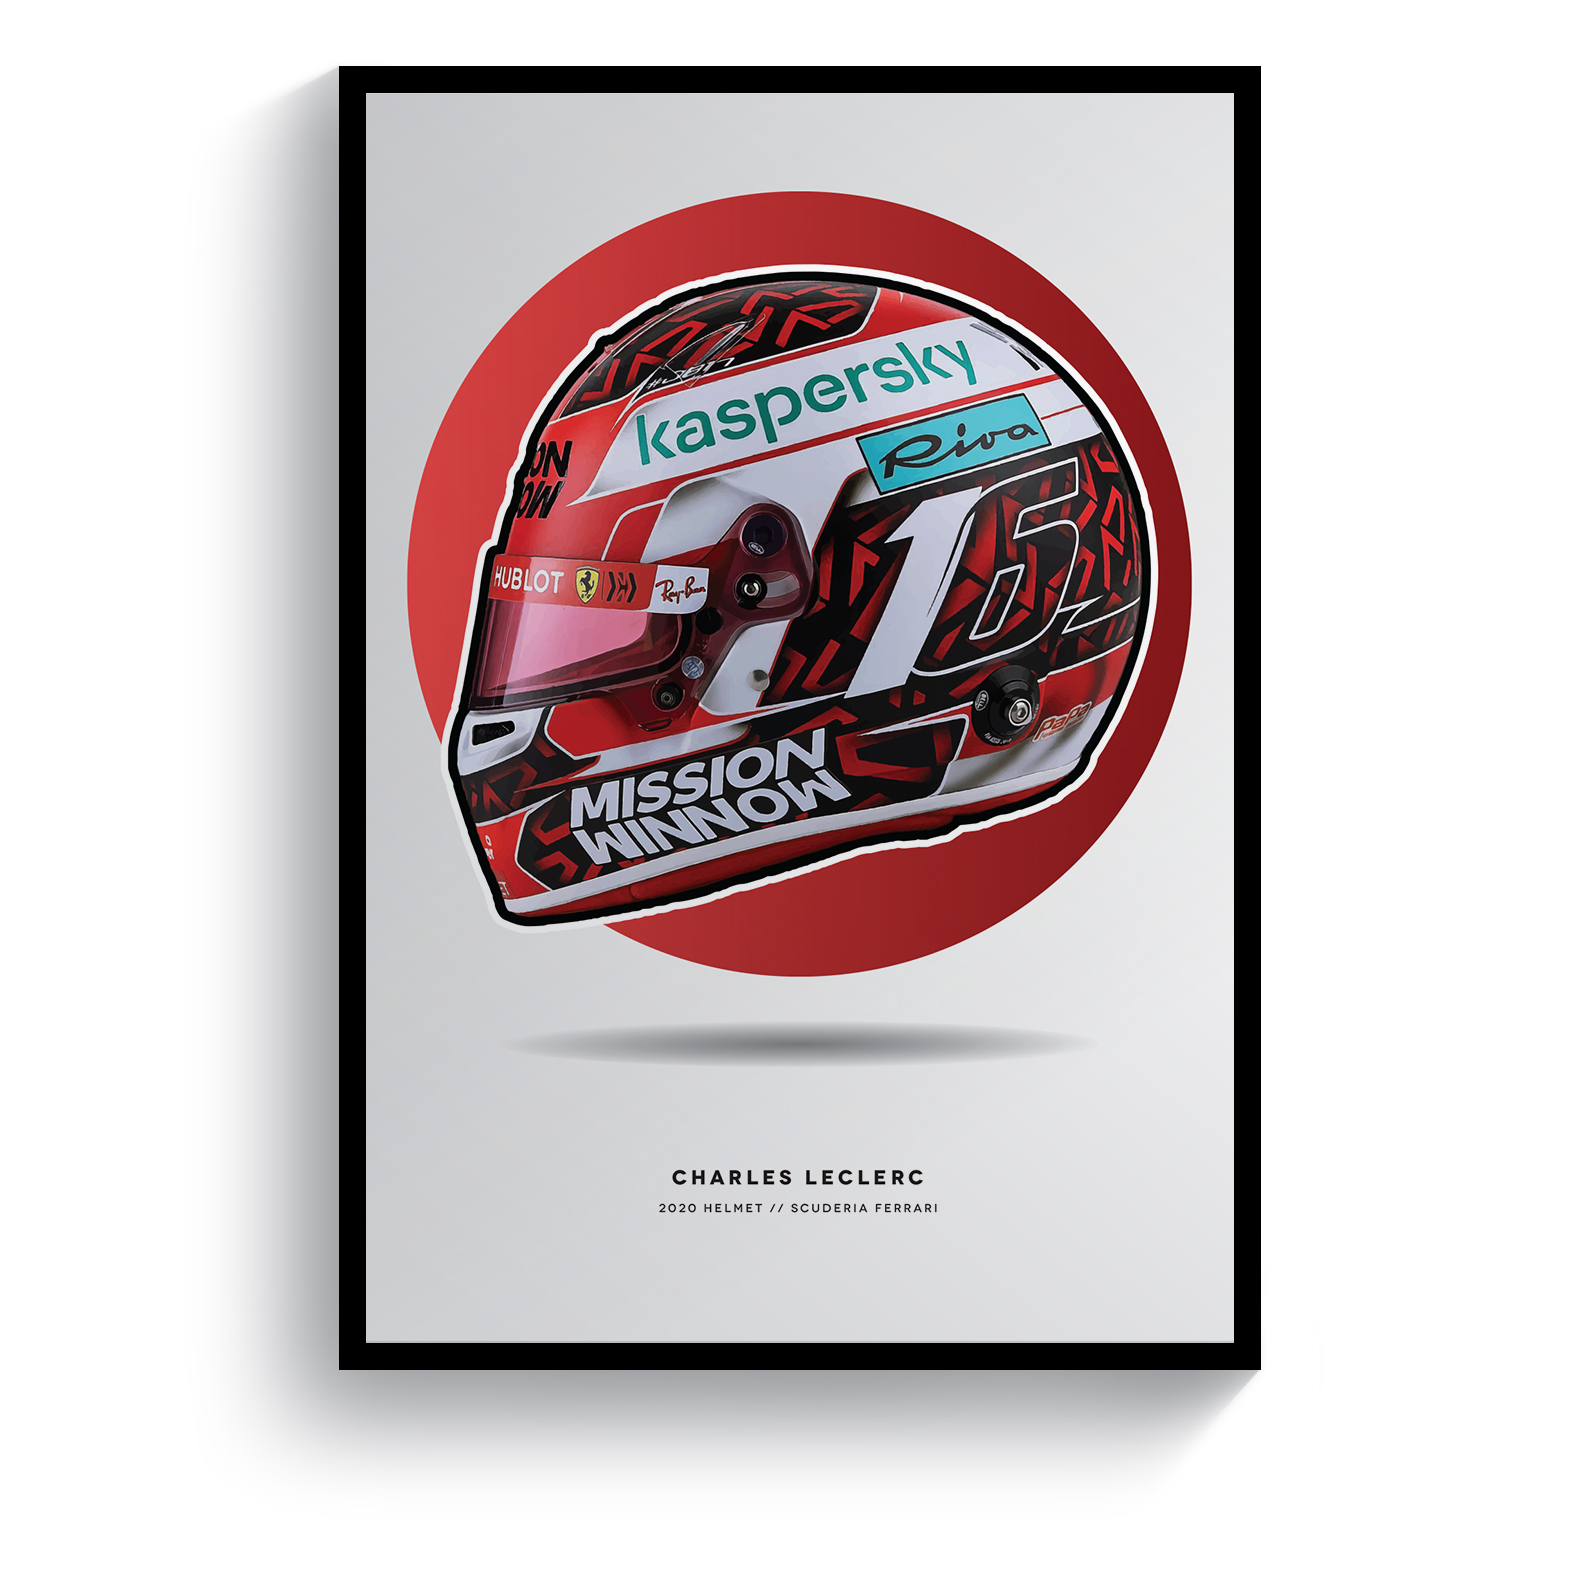 Product image for Charles Leclerc | 2020 Helmet | Pit Lane Prints | Art Print